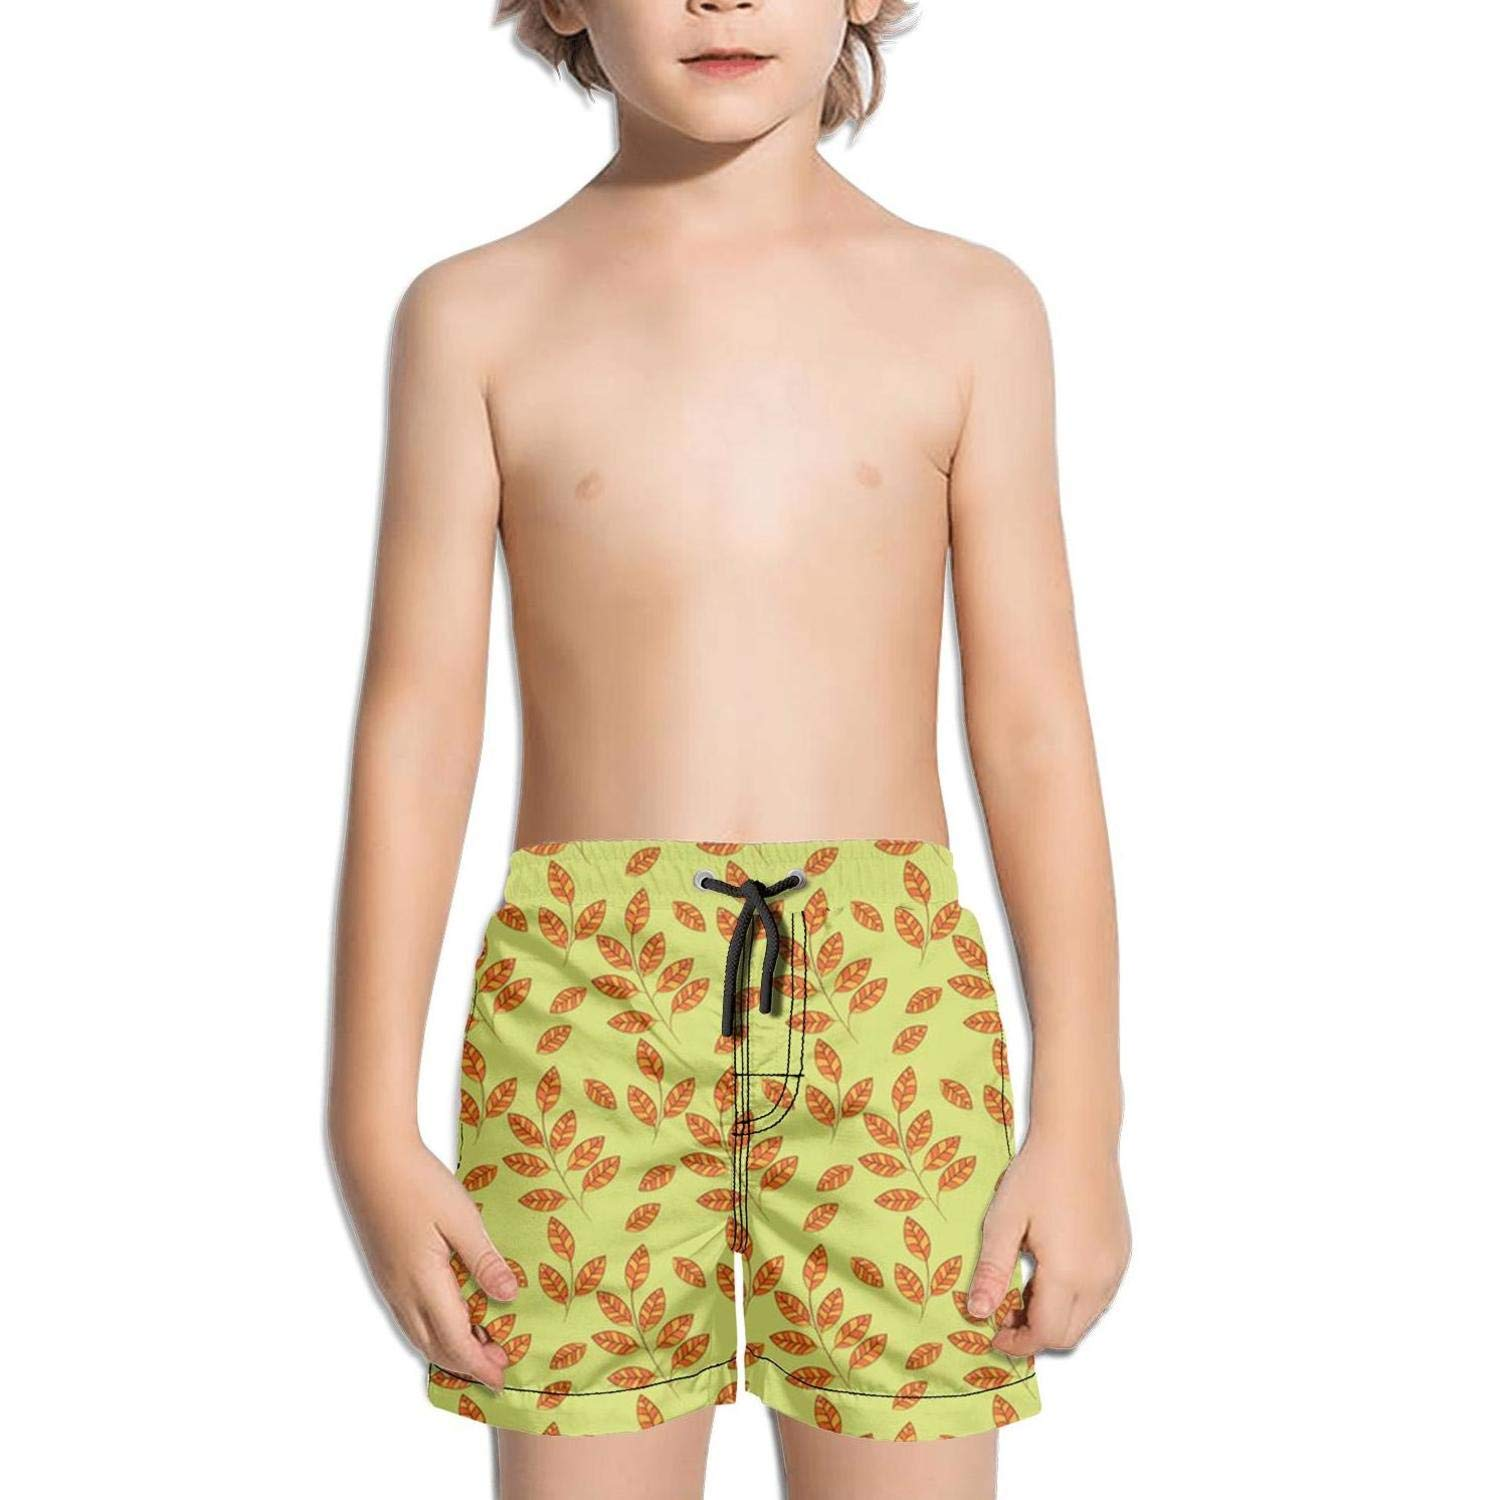 Lenard Hughes Boys Quick Dry Beach Shorts with Pockets Autumn Leaves Seamless Pattern Background Swim Trunks for Summer